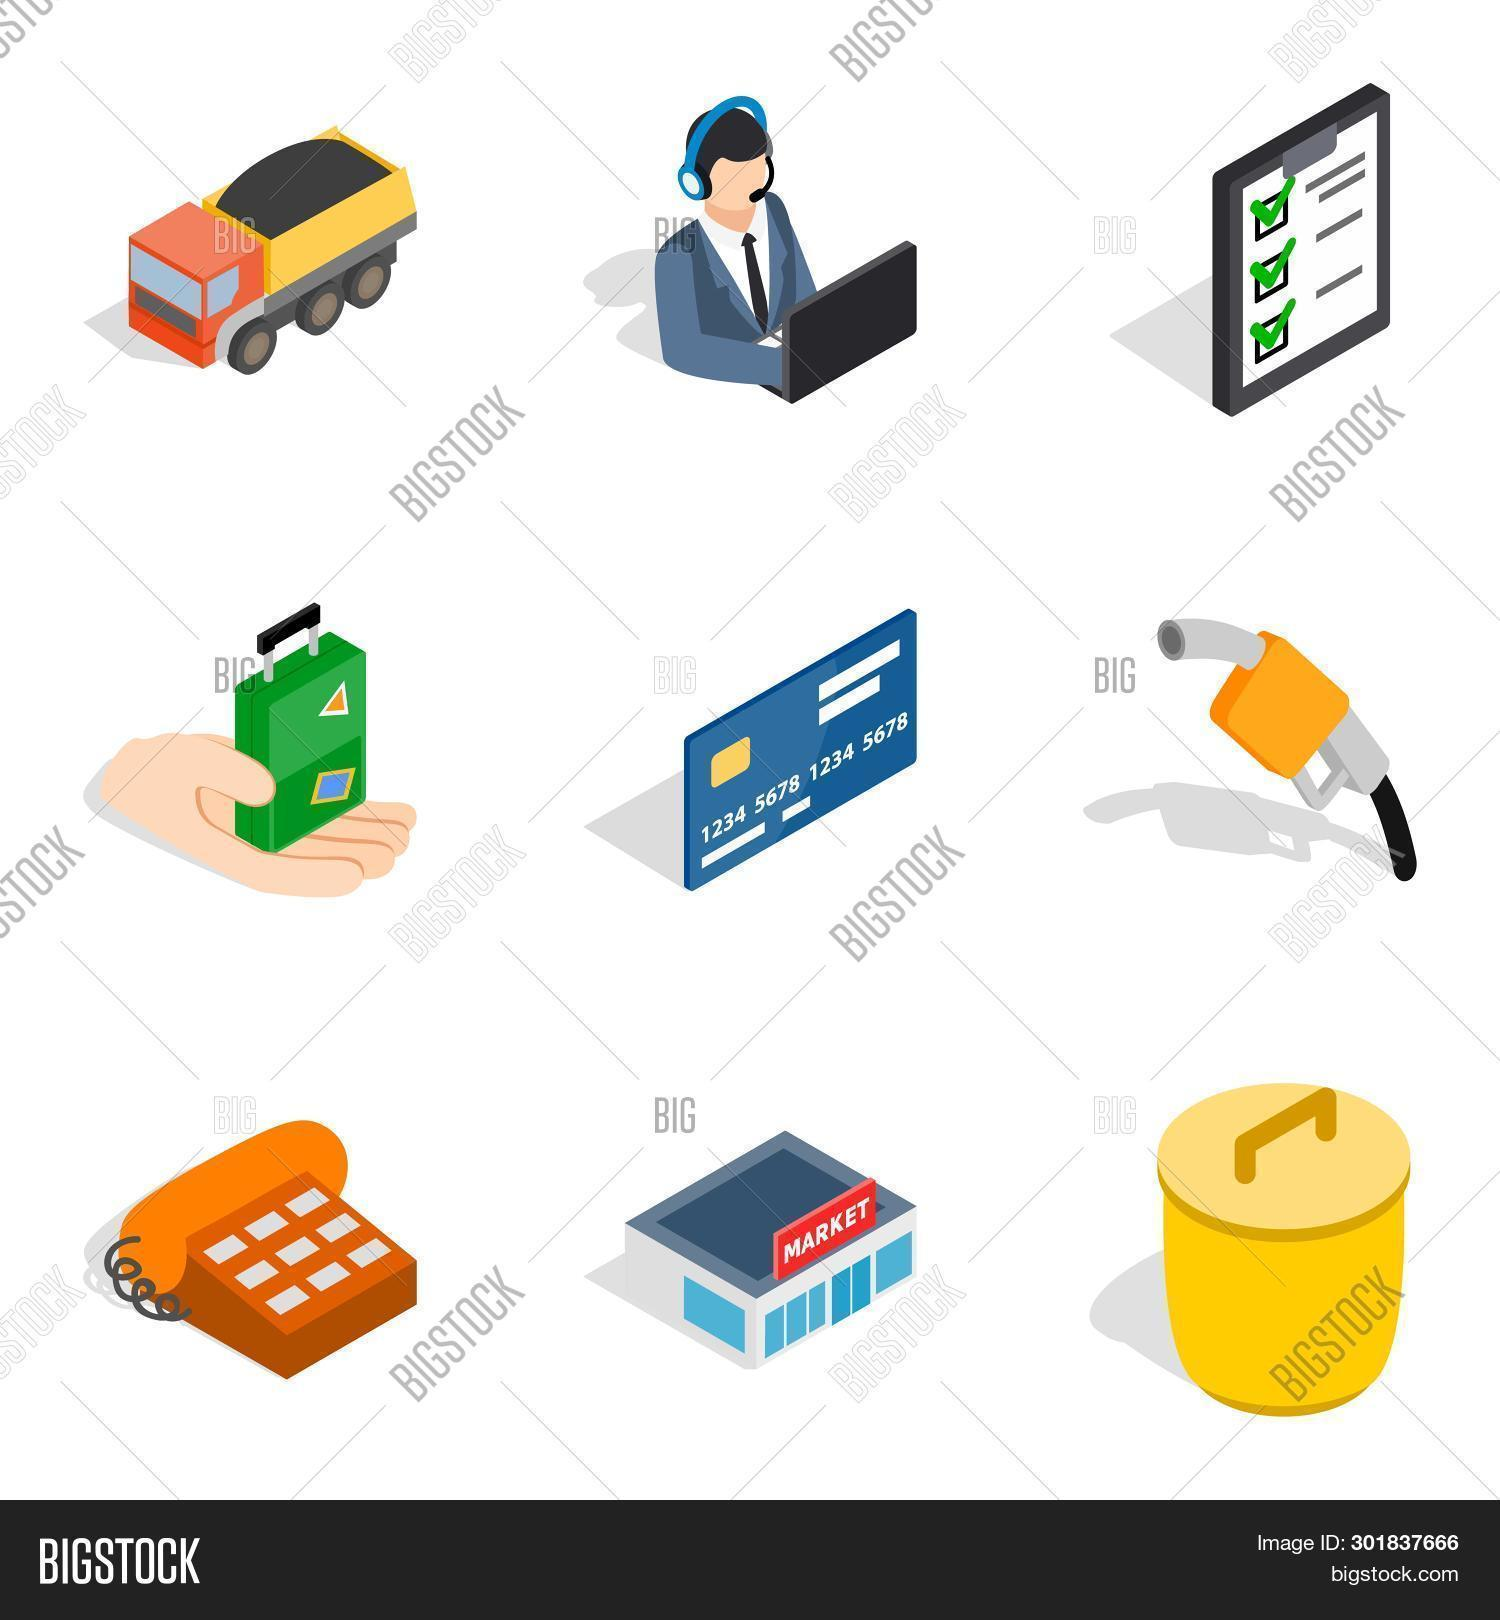 3d,advertisement,association,briefcase,business,businessman,cabinet,clerical,coffee,computer,contract,coworking,document,employee,government,hand,happy,icons,illustration,isolated,isometric,limited,manager,meeting,message,offer,office,official,organization,people,presentation,professional,recruiting,recruitment,safety,schedule,secretary,servant,set,success,supplies,table,team,teamwork,template,time,work,working,workplace